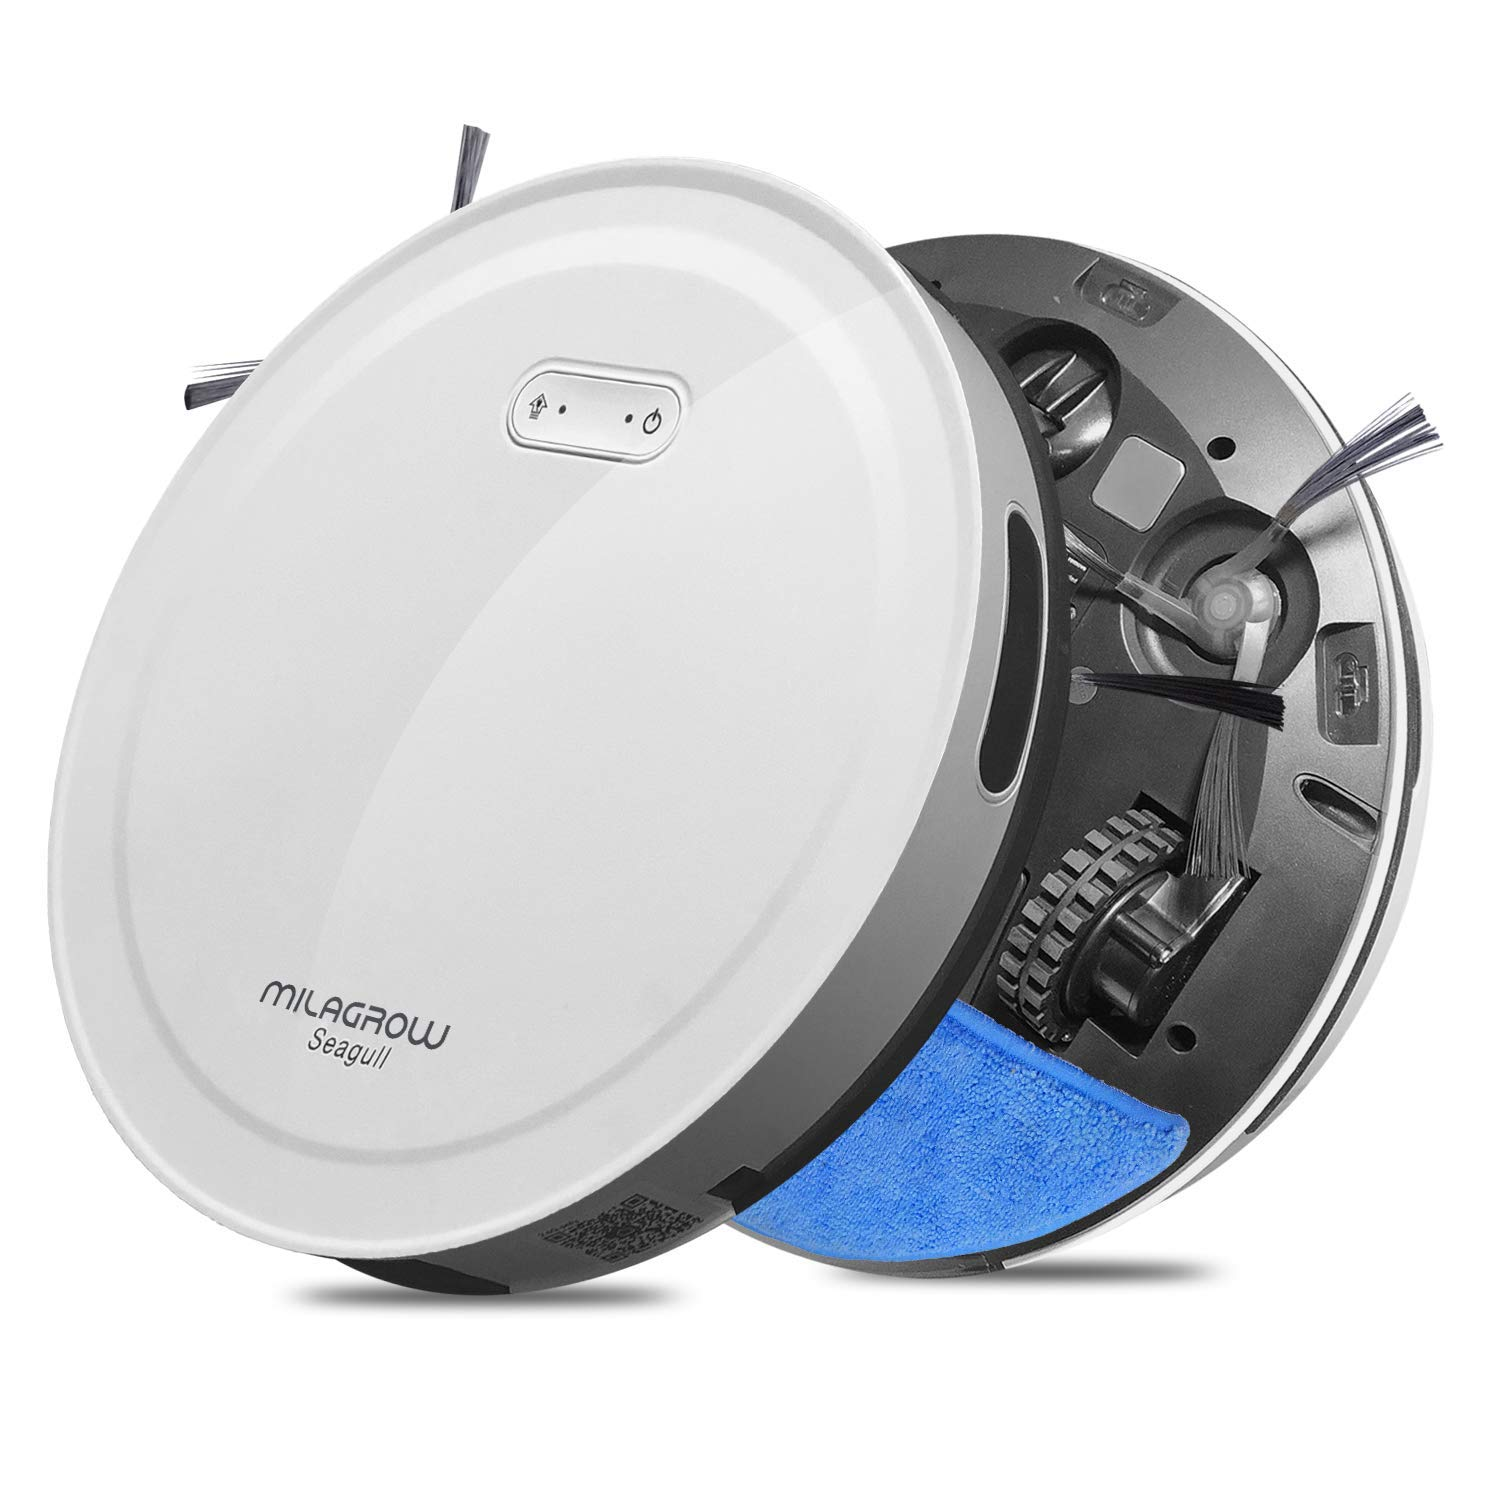 Milagrow - 1500Pa Autoboost Suction Robotic Vacuum Cleaner $166.93 Coupon